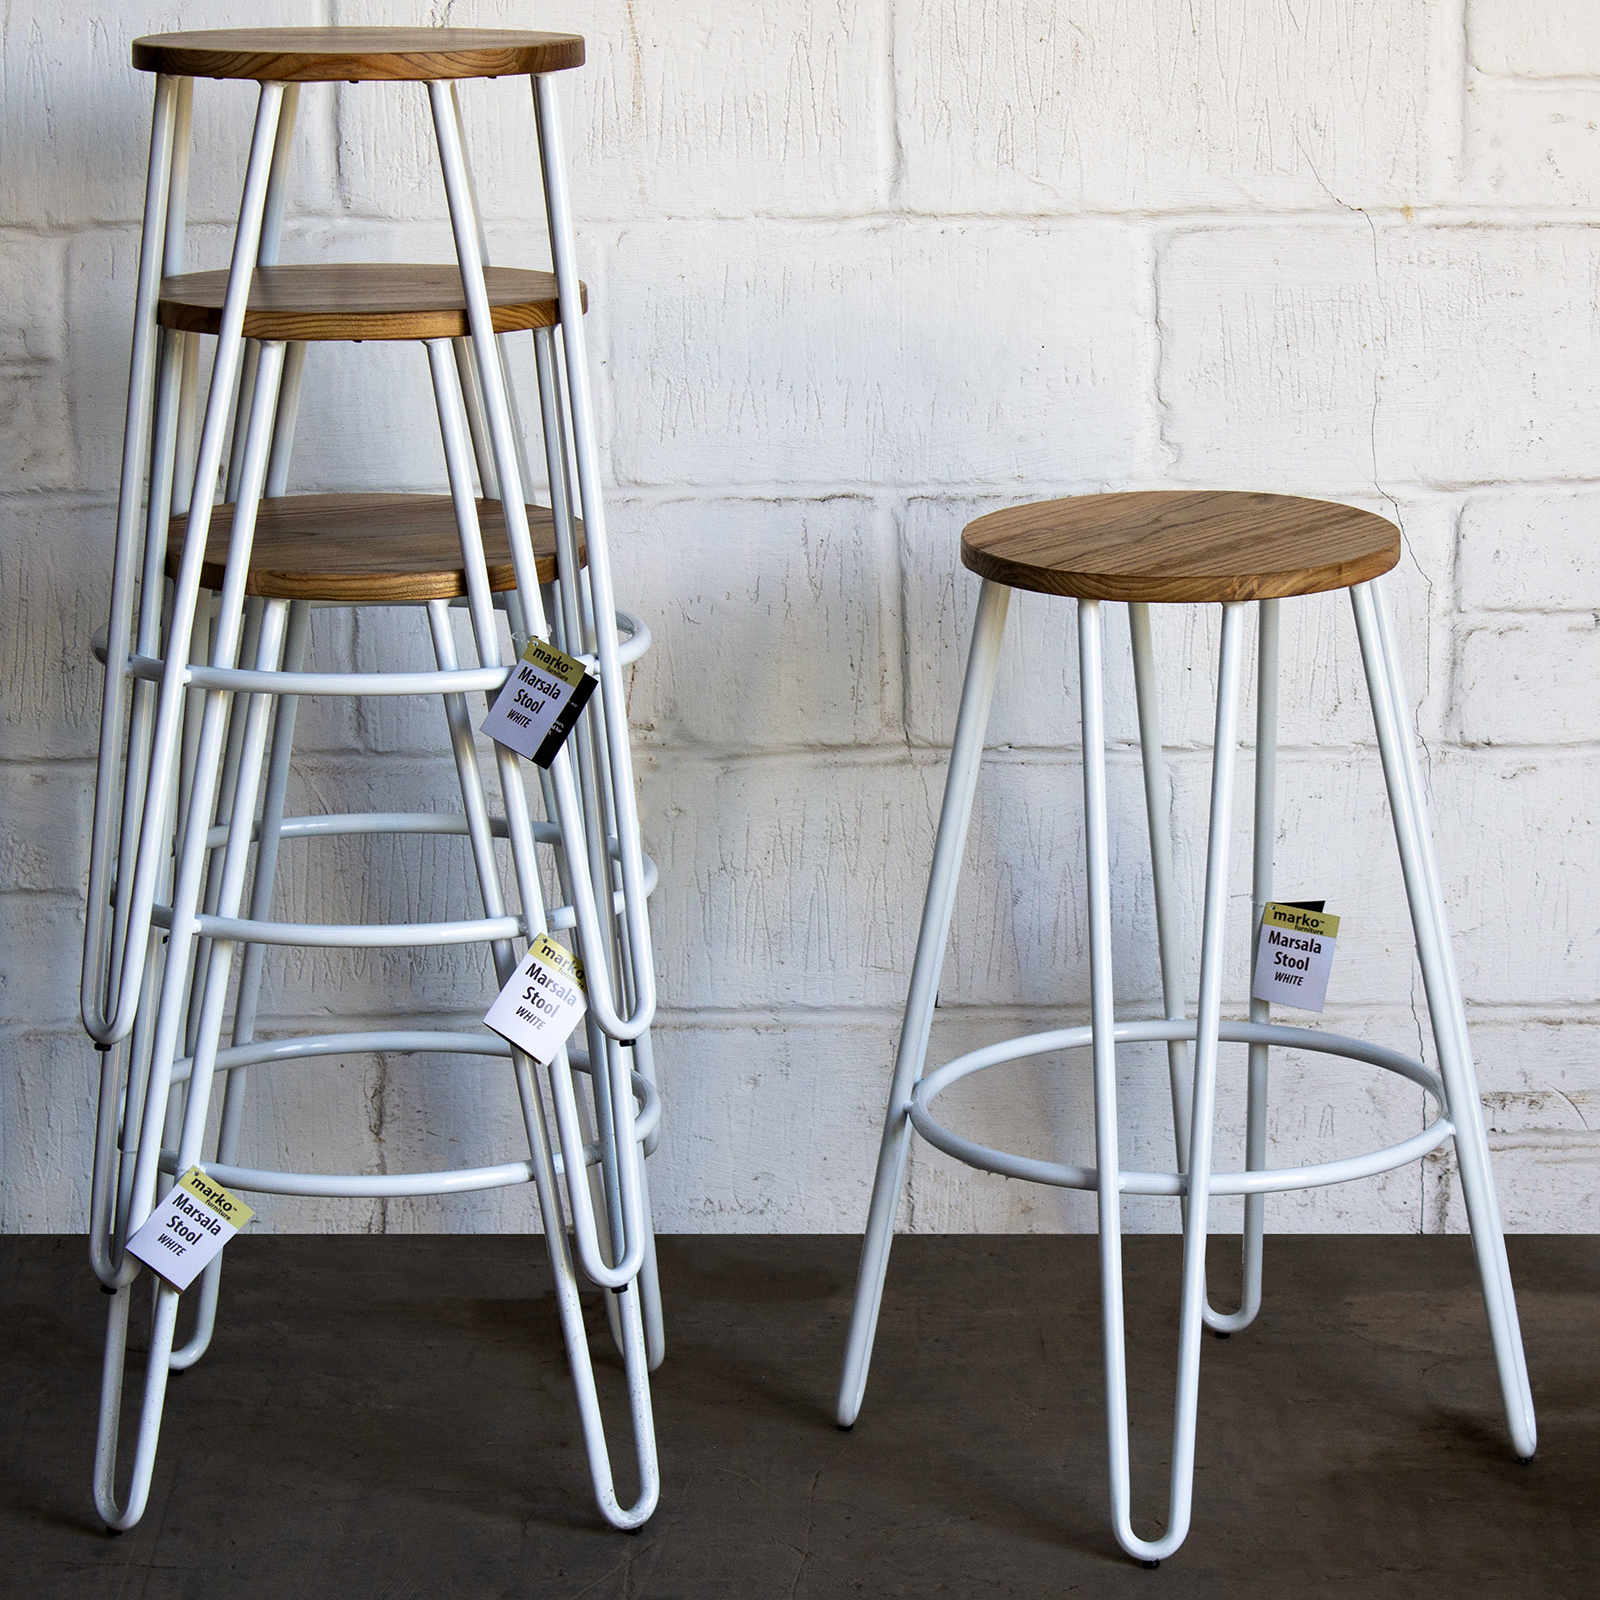 Fantastic Details About Bar Stool White Metal Hairpin Legs Round Light Wood Seat Rustic Industrial Cafe Gmtry Best Dining Table And Chair Ideas Images Gmtryco